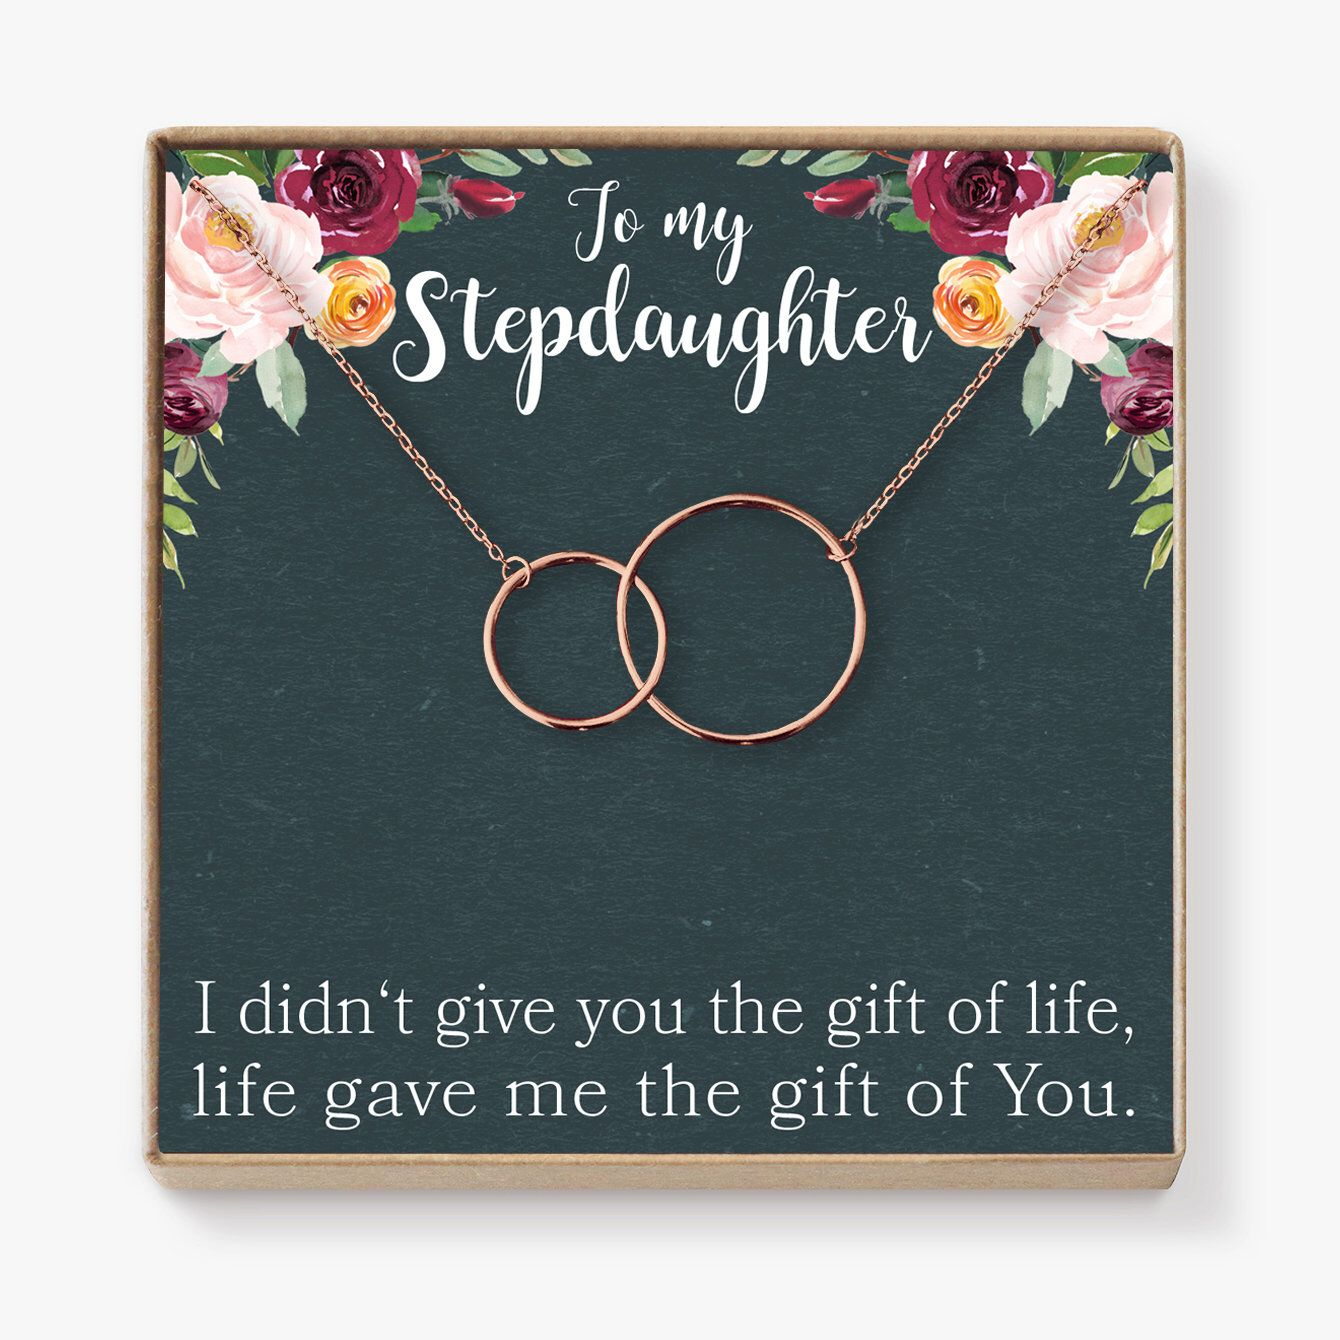 Stepdaughter Gift Necklace: Gifts From Stepmom, Stepsister